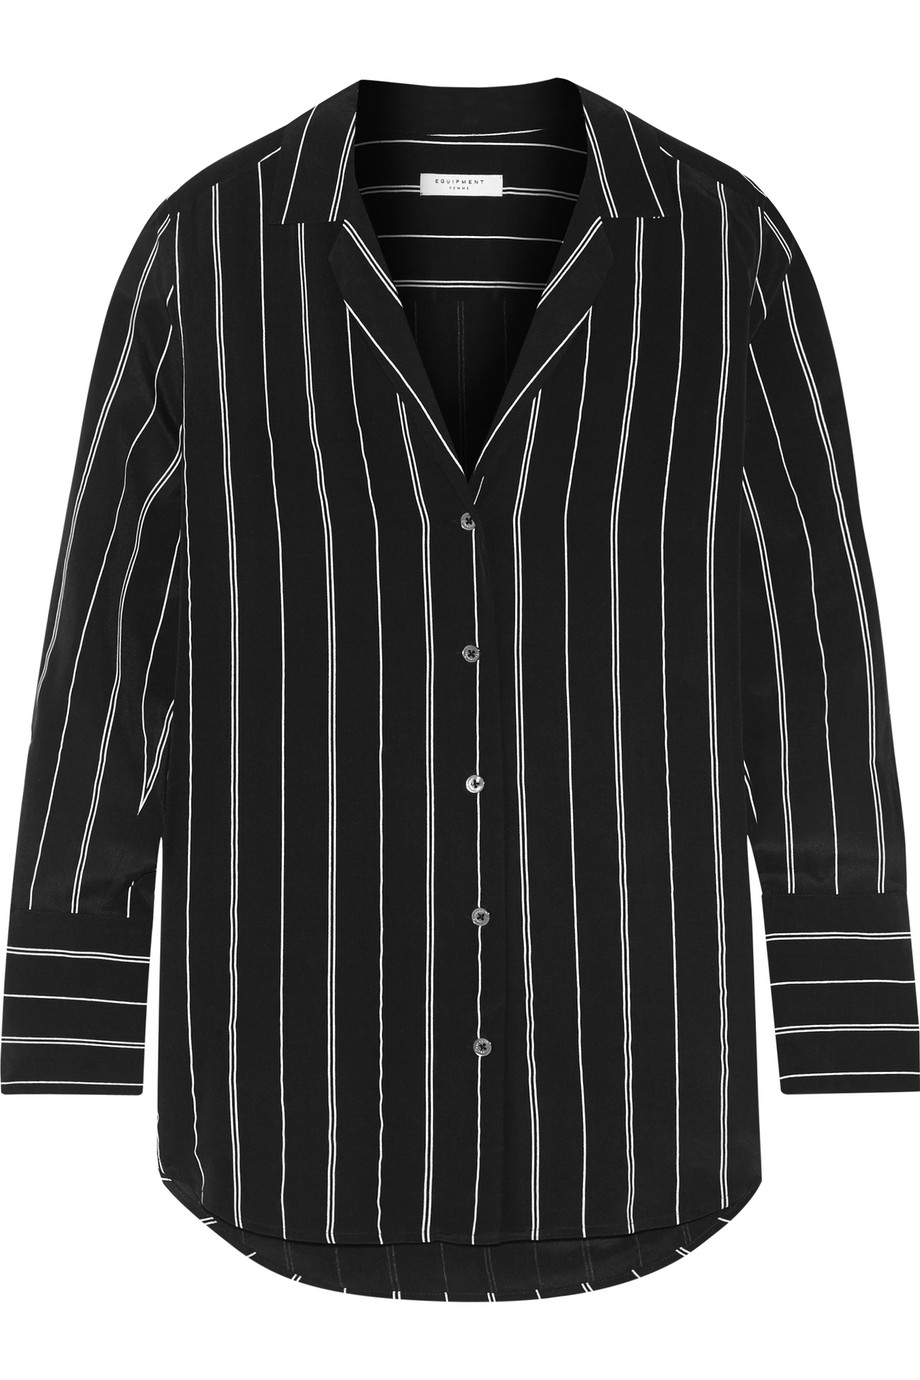 Equipment May Striped Washed-Silk Shirt, Black, Women's